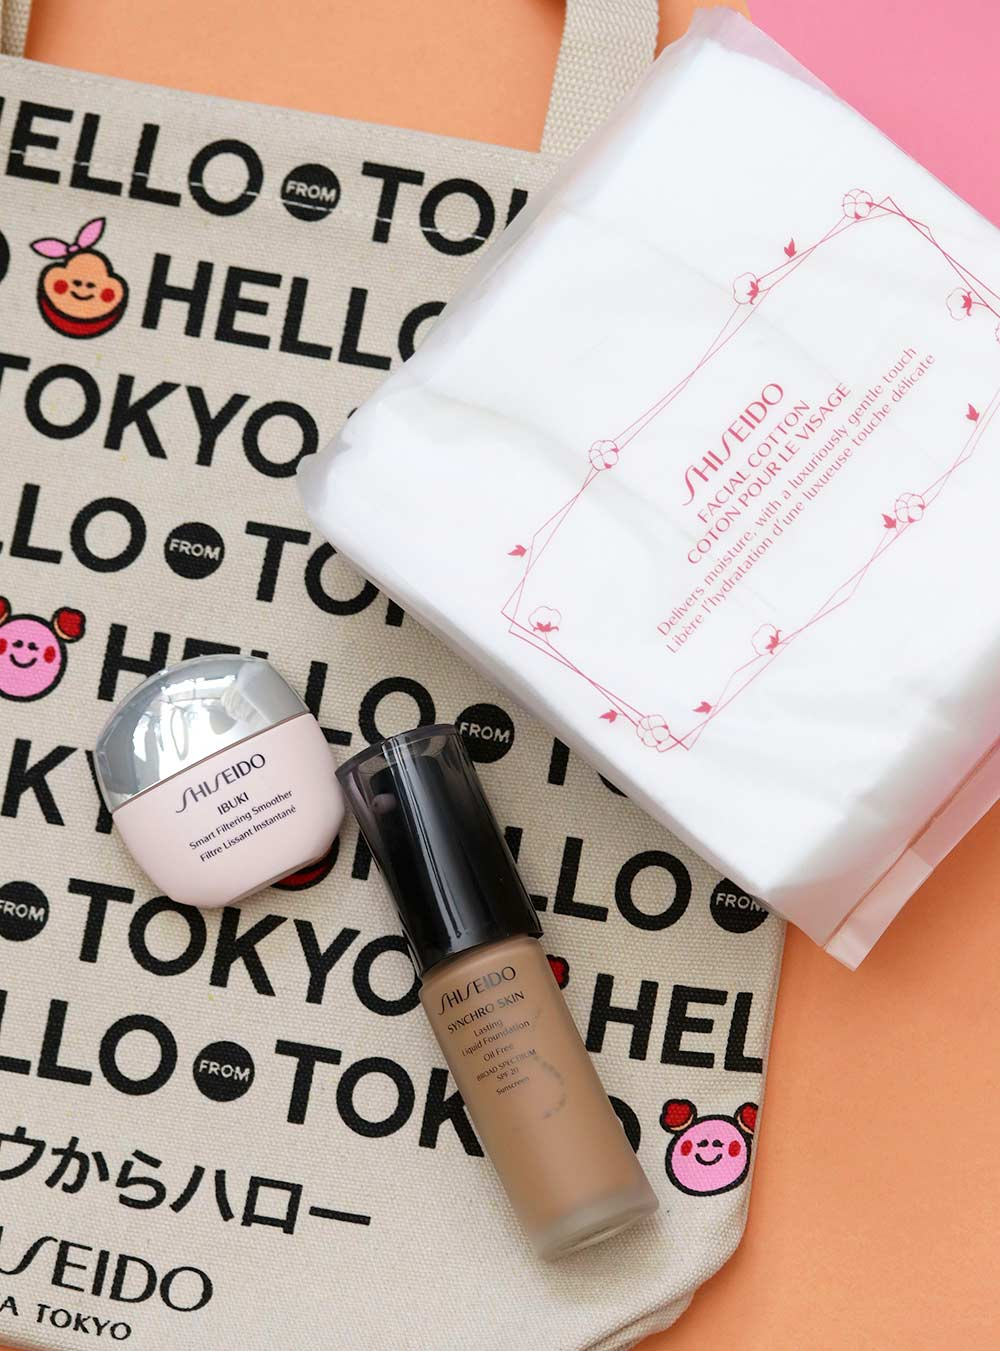 The Ibuki Smart Filtering Smoother ($23), Synchro Skin Foundation in Golden 5 ($45) and Facial Cottono ($10)